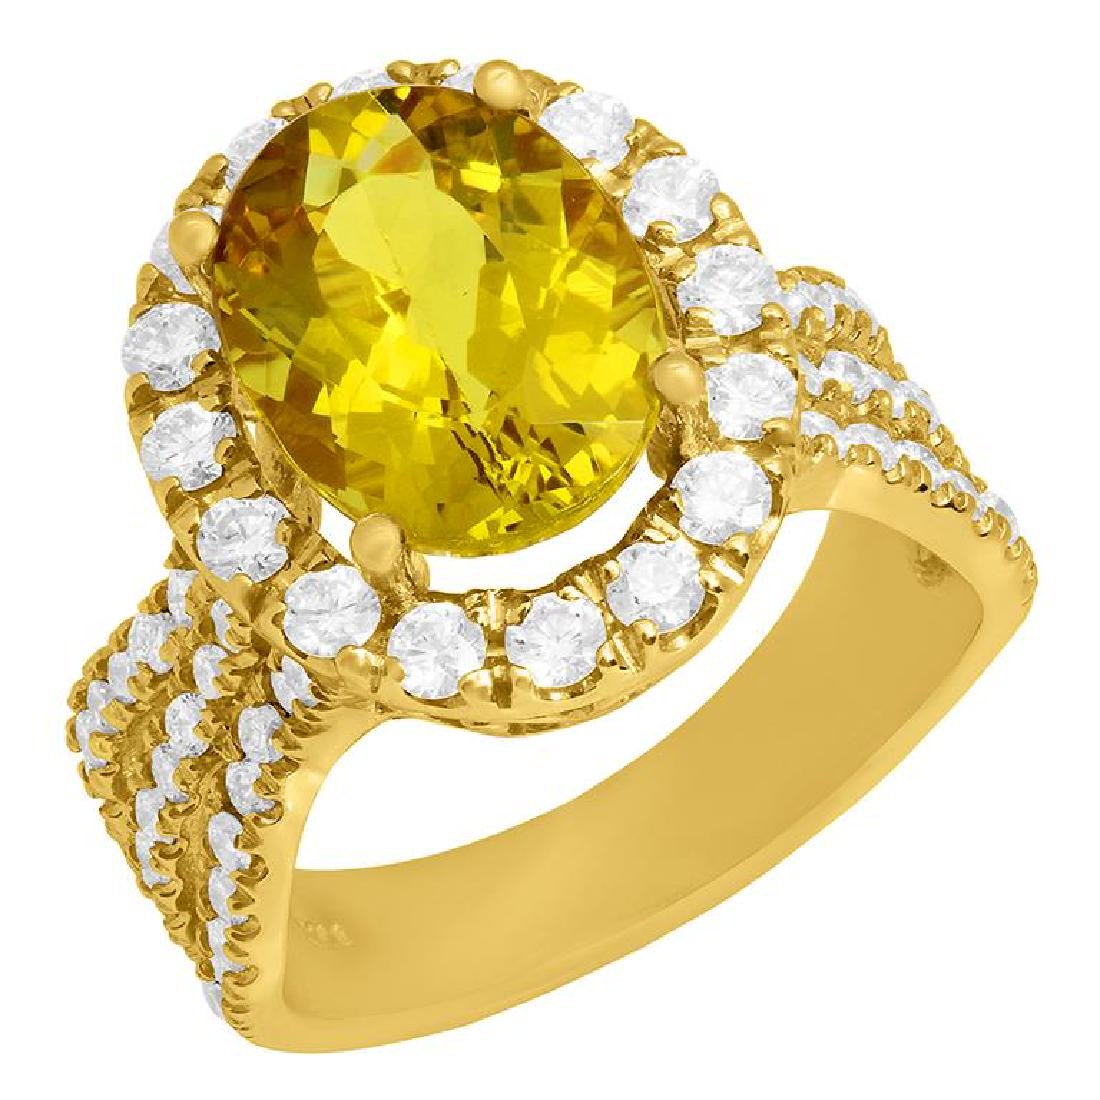 14k Yellow Gold 3.70 Yellow Beryl 1.57ct Diamond Ring